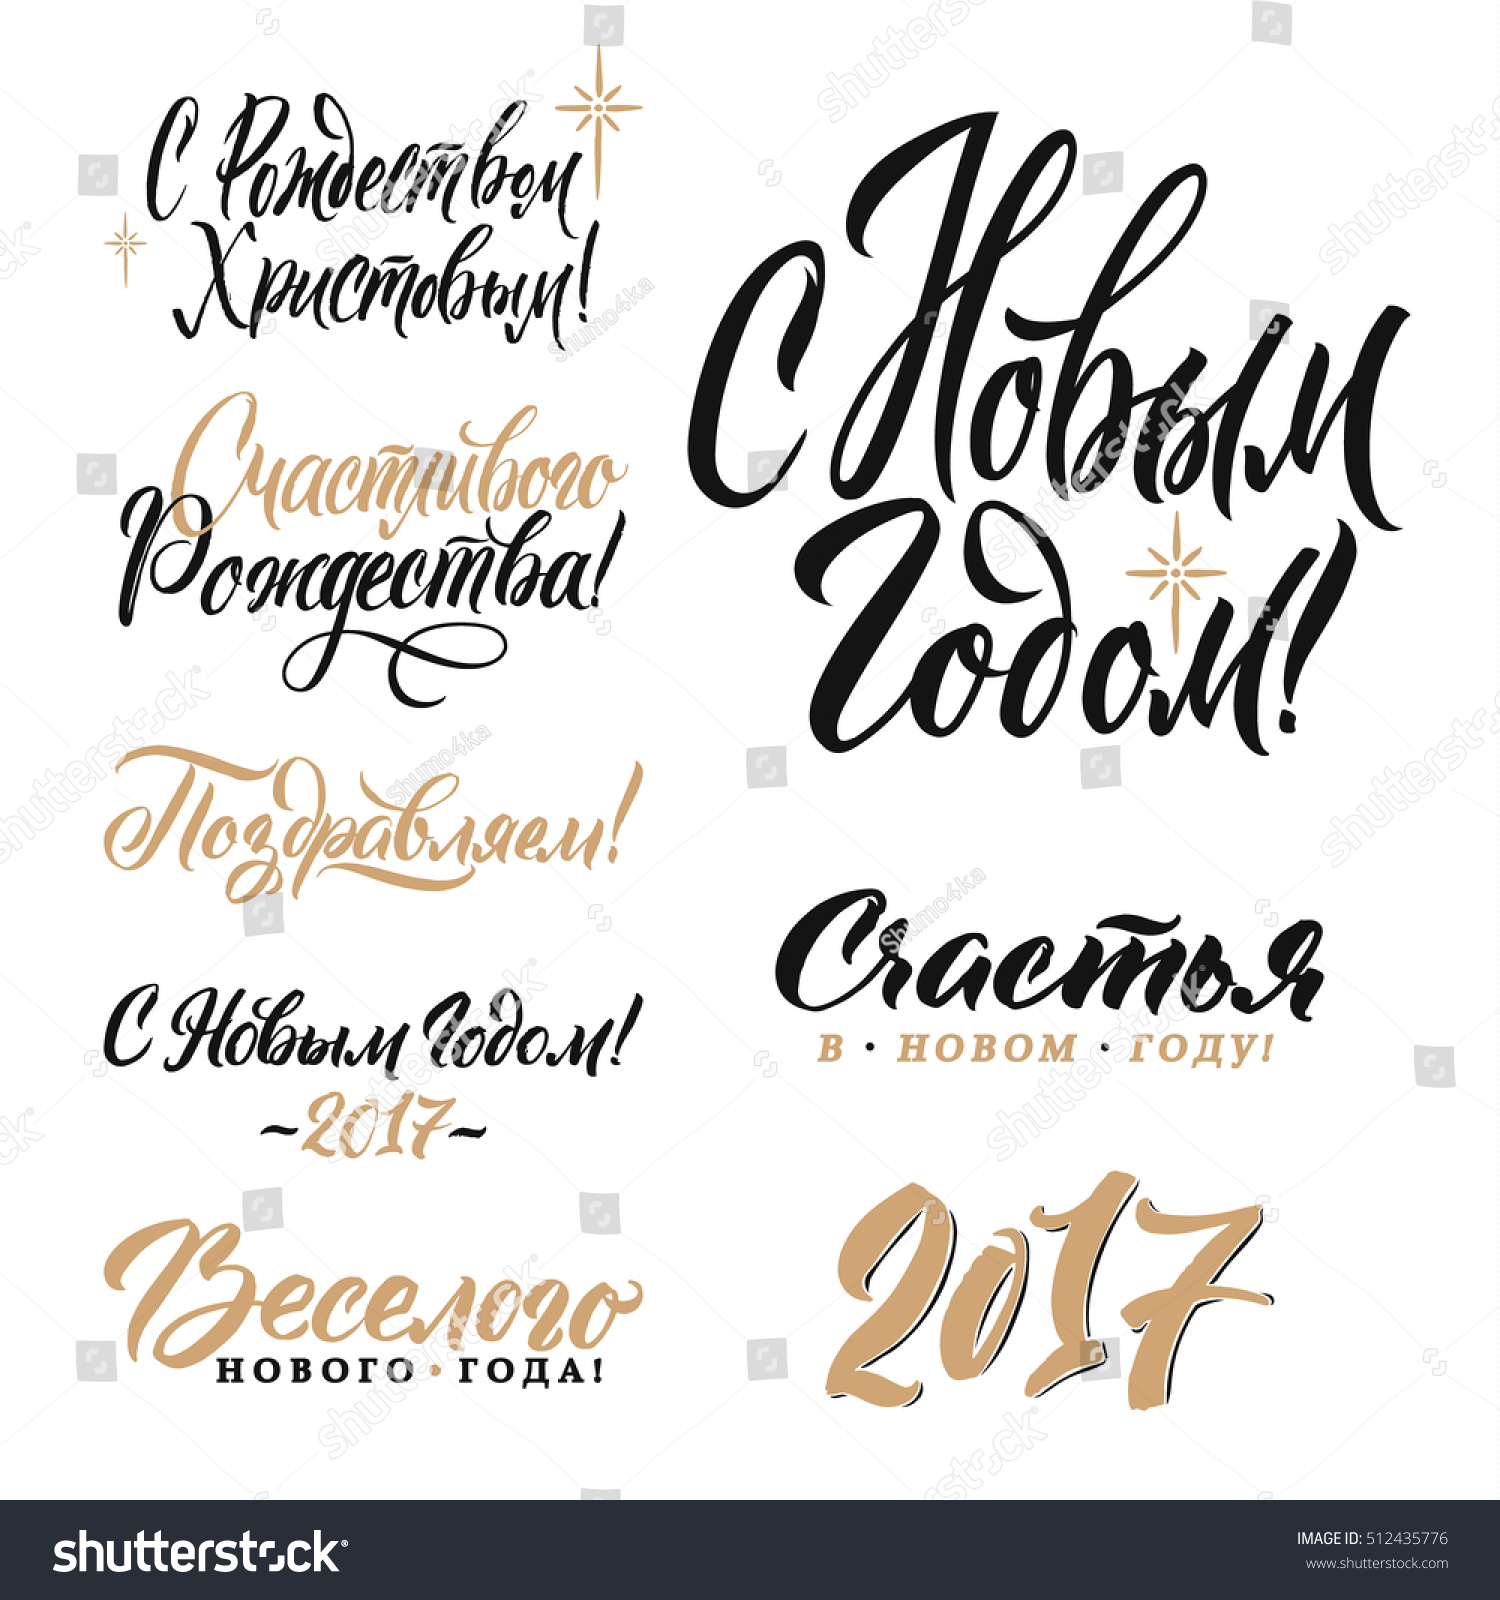 Merry christmas happy new year russian stock vector 512435776 merry christmas and happy new year russian calligraphy set greeting card design set on white kristyandbryce Choice Image